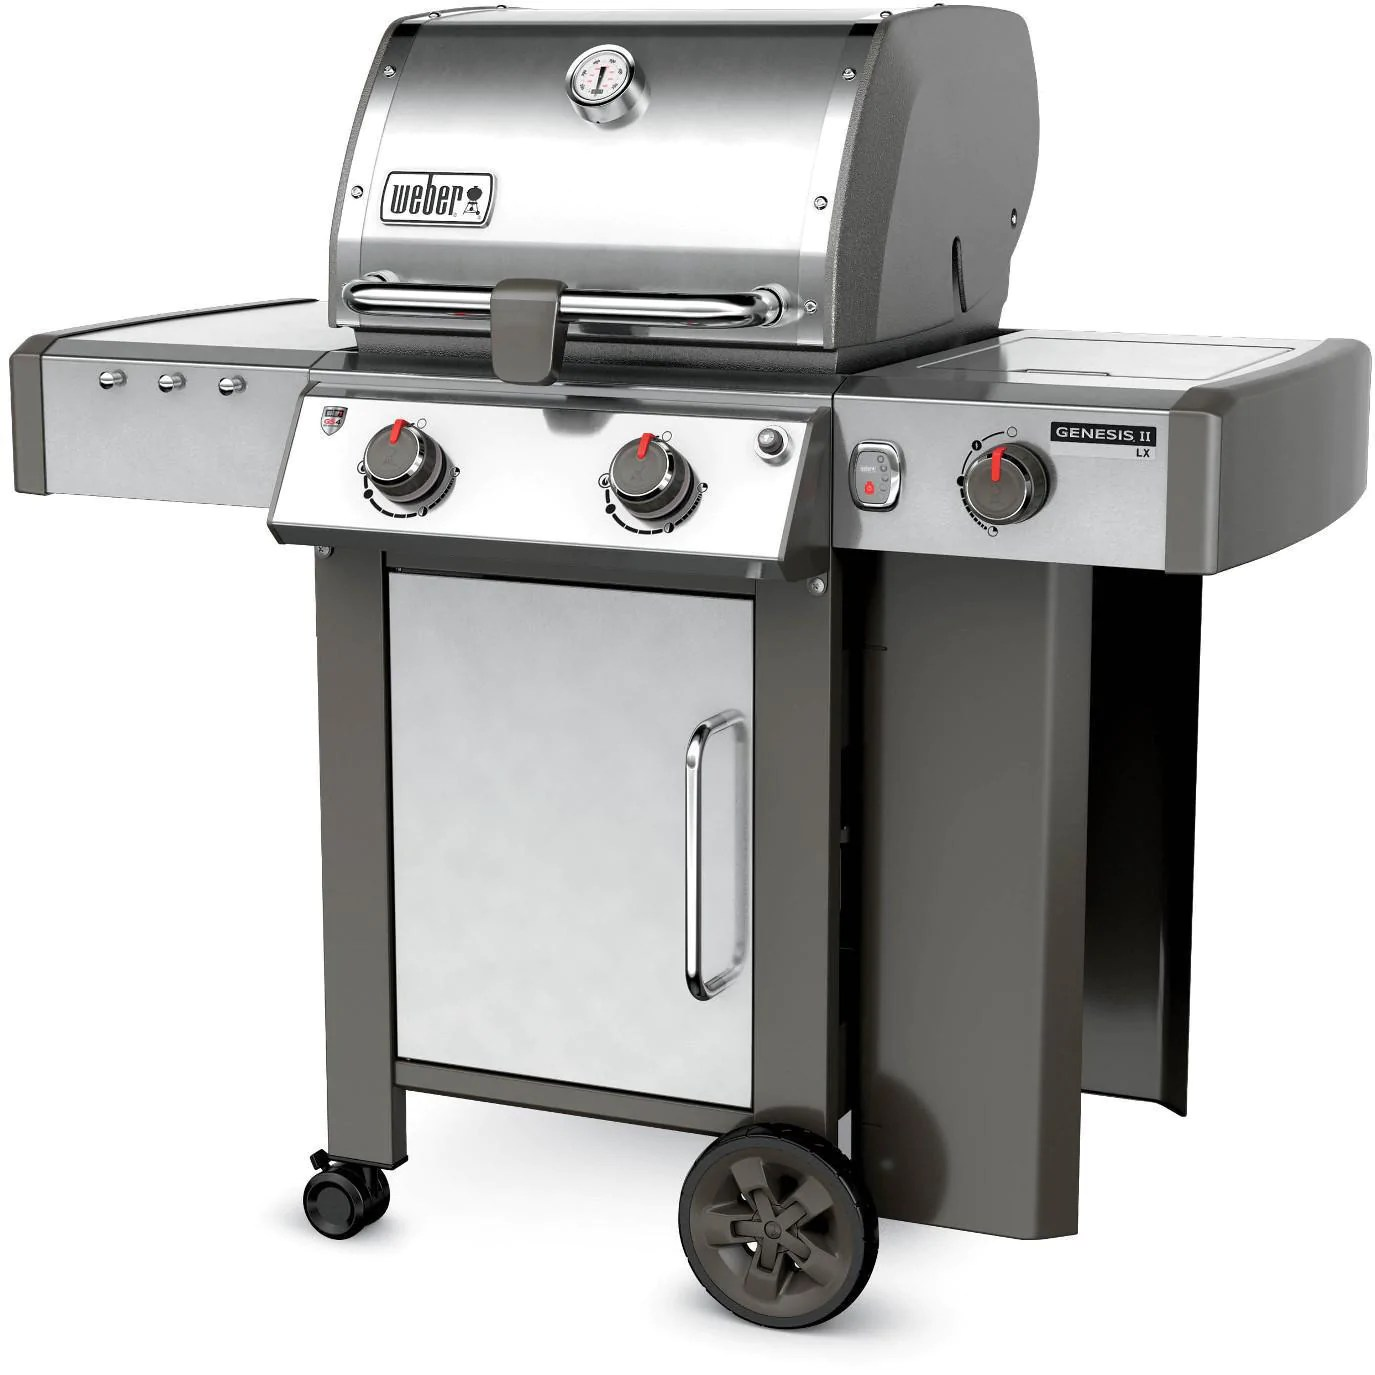 Bbq Weber Genesis Weber Genesis Ii Lx S 240 Gas Grill With Side Burner Stainless